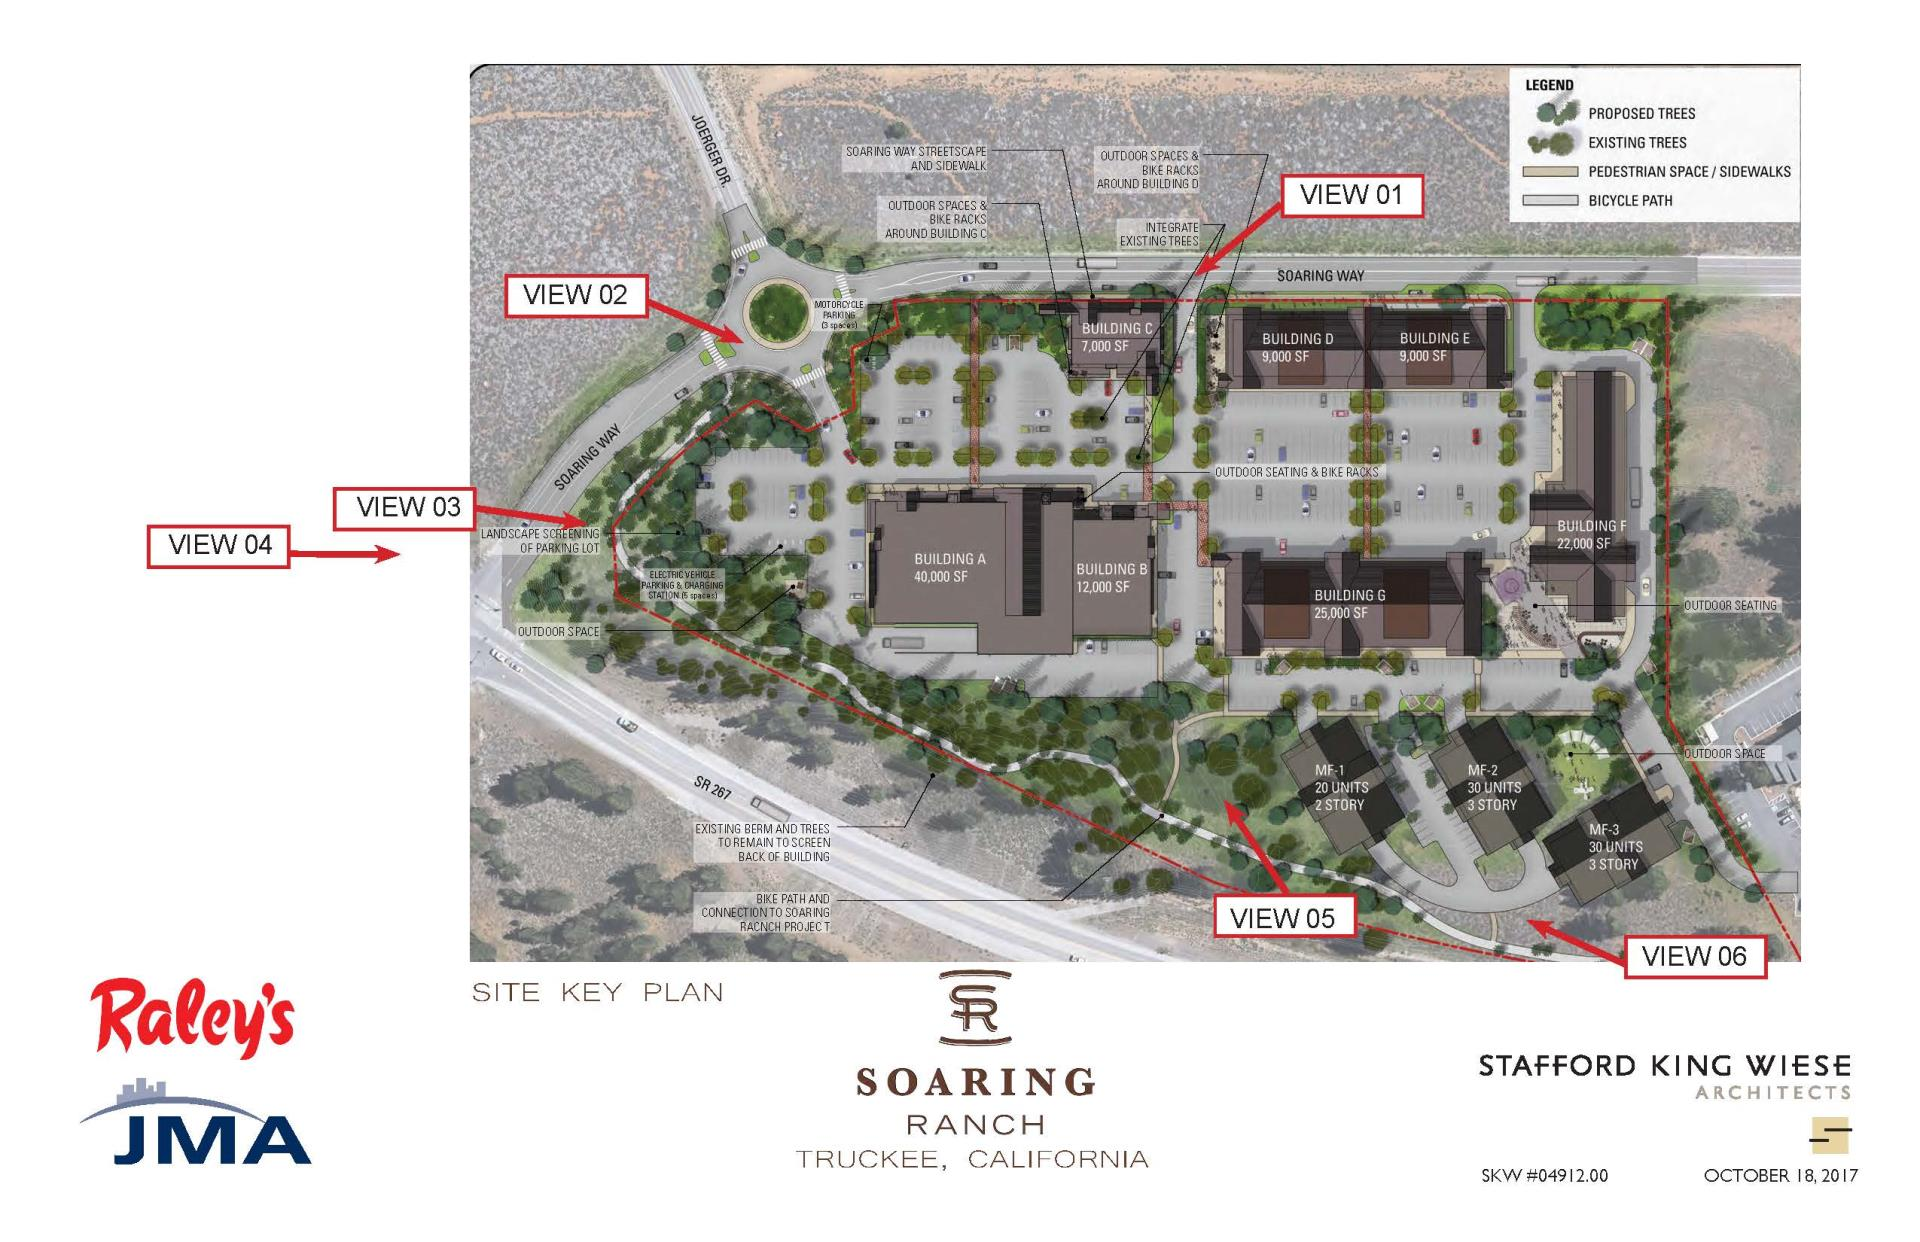 Raley's site plan